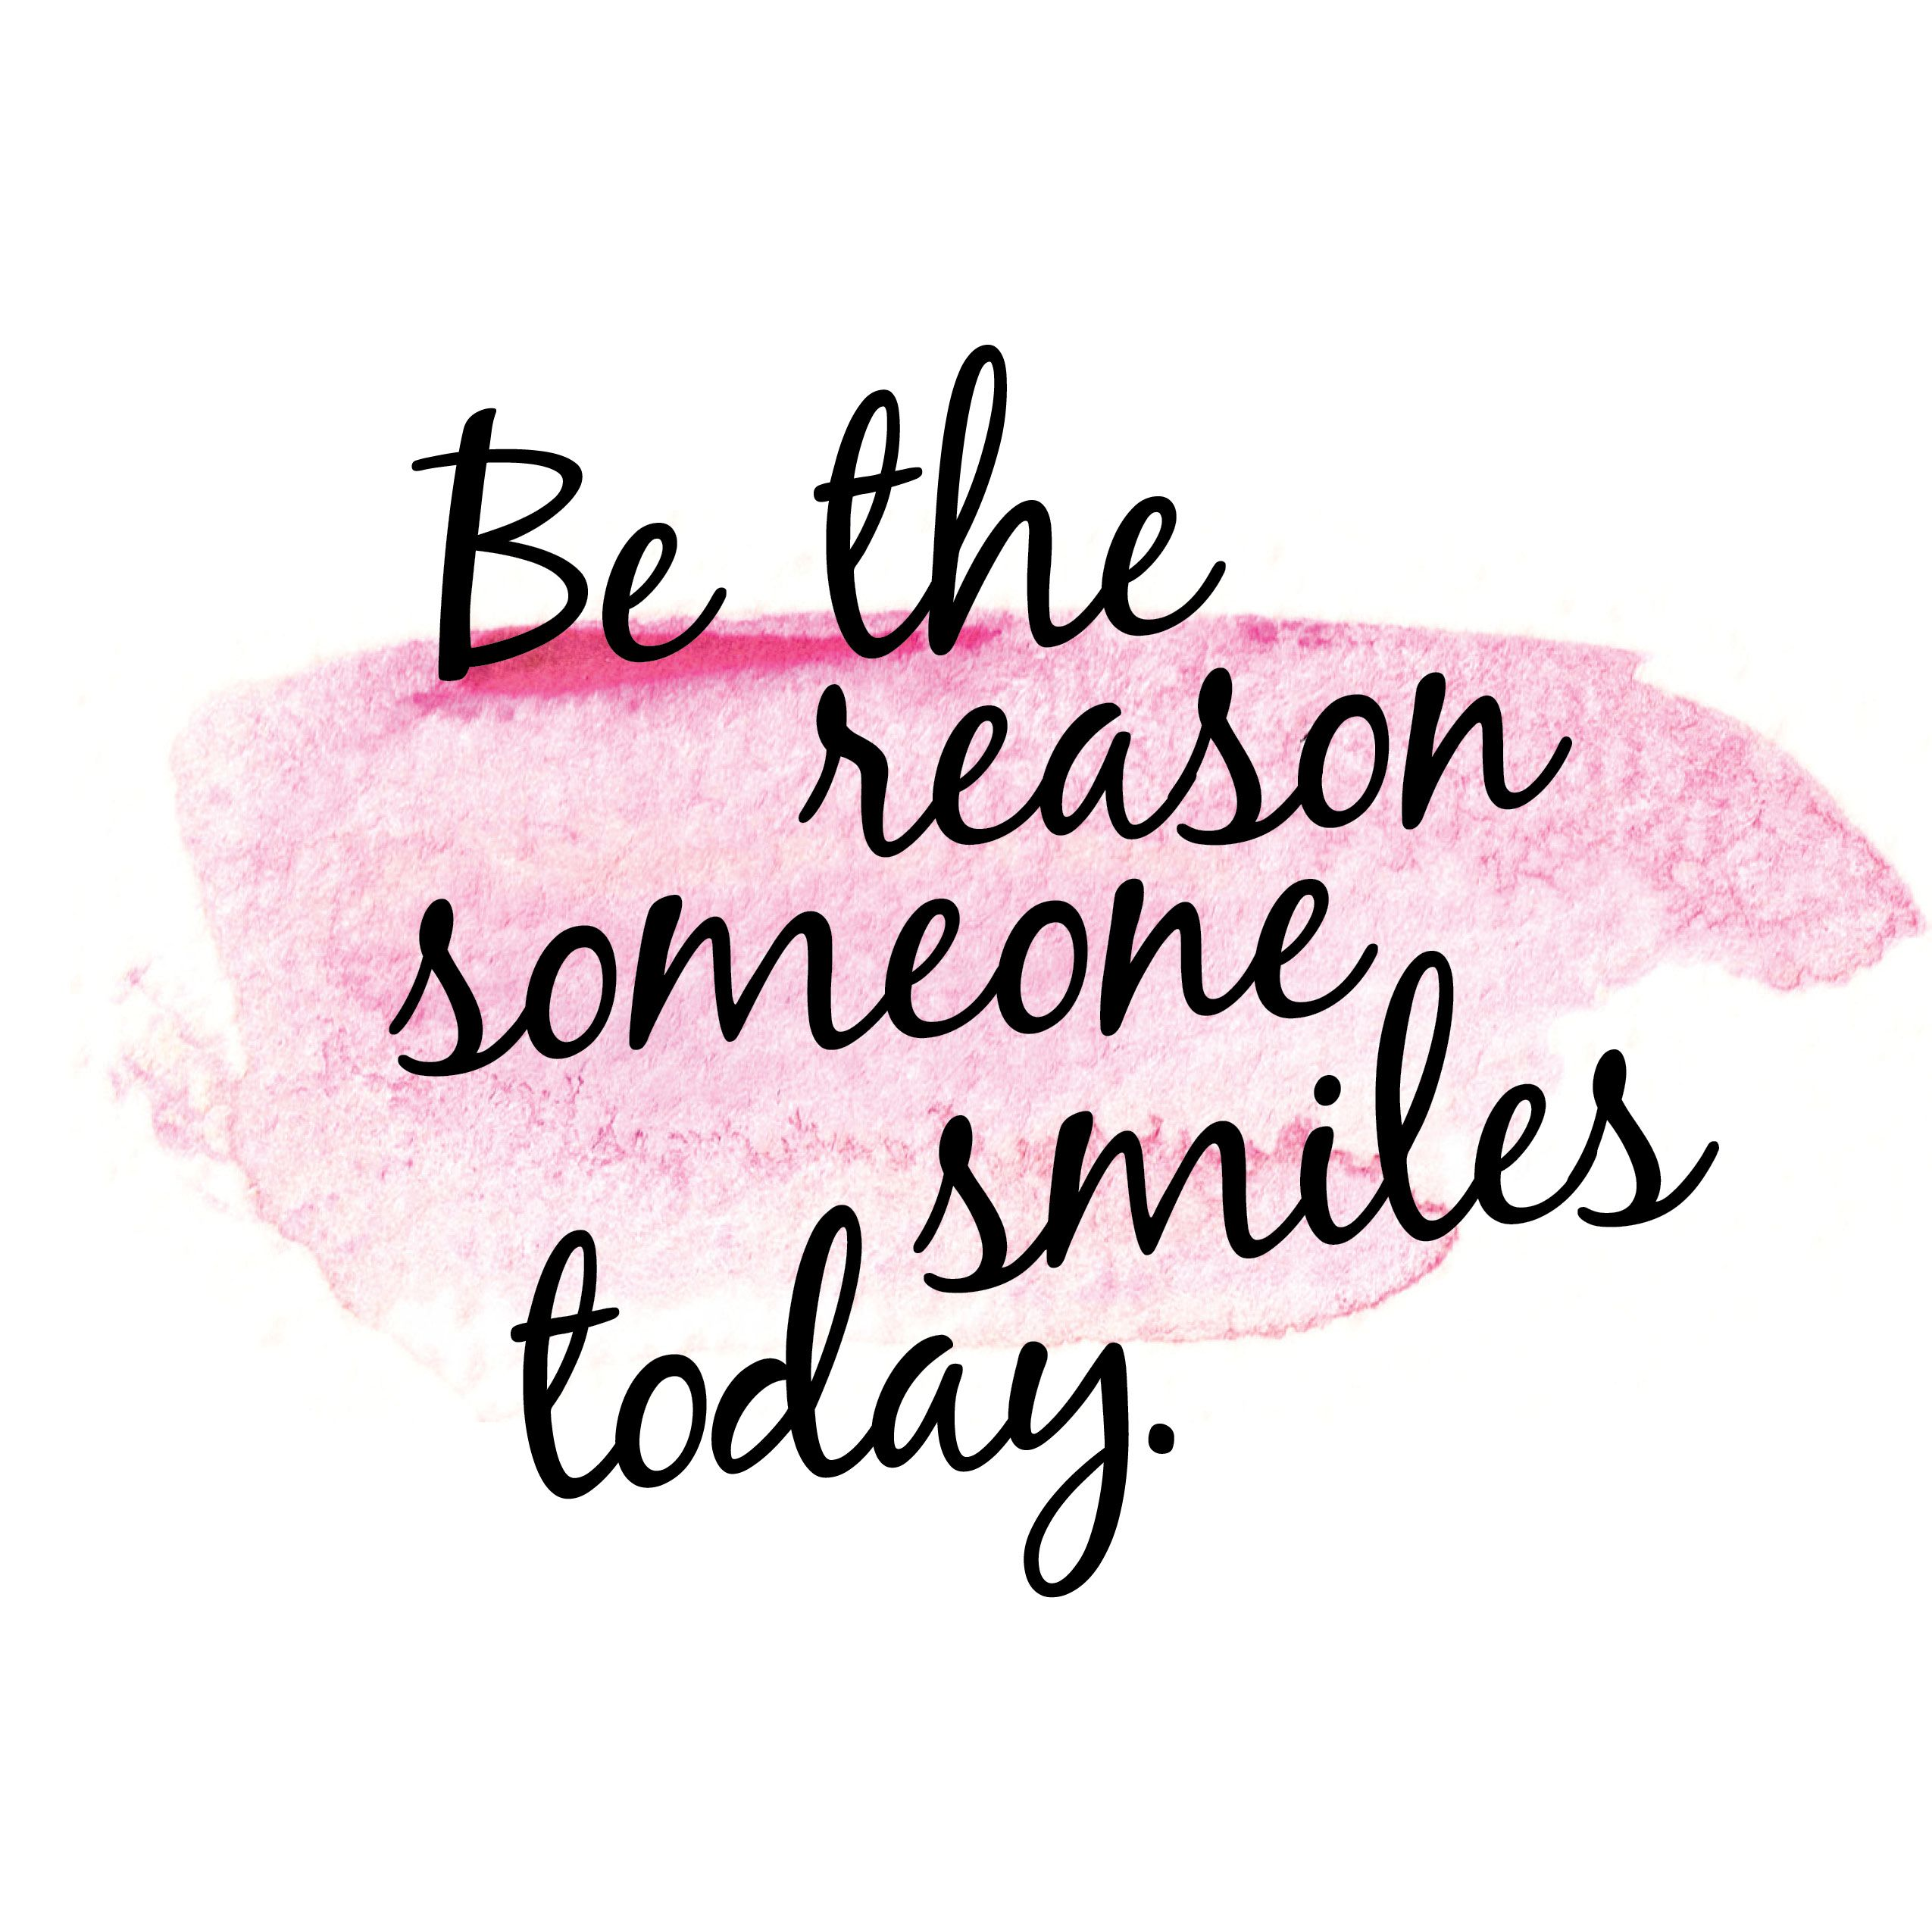 Be the reason someone smiles today. #inspiration #quote | Short